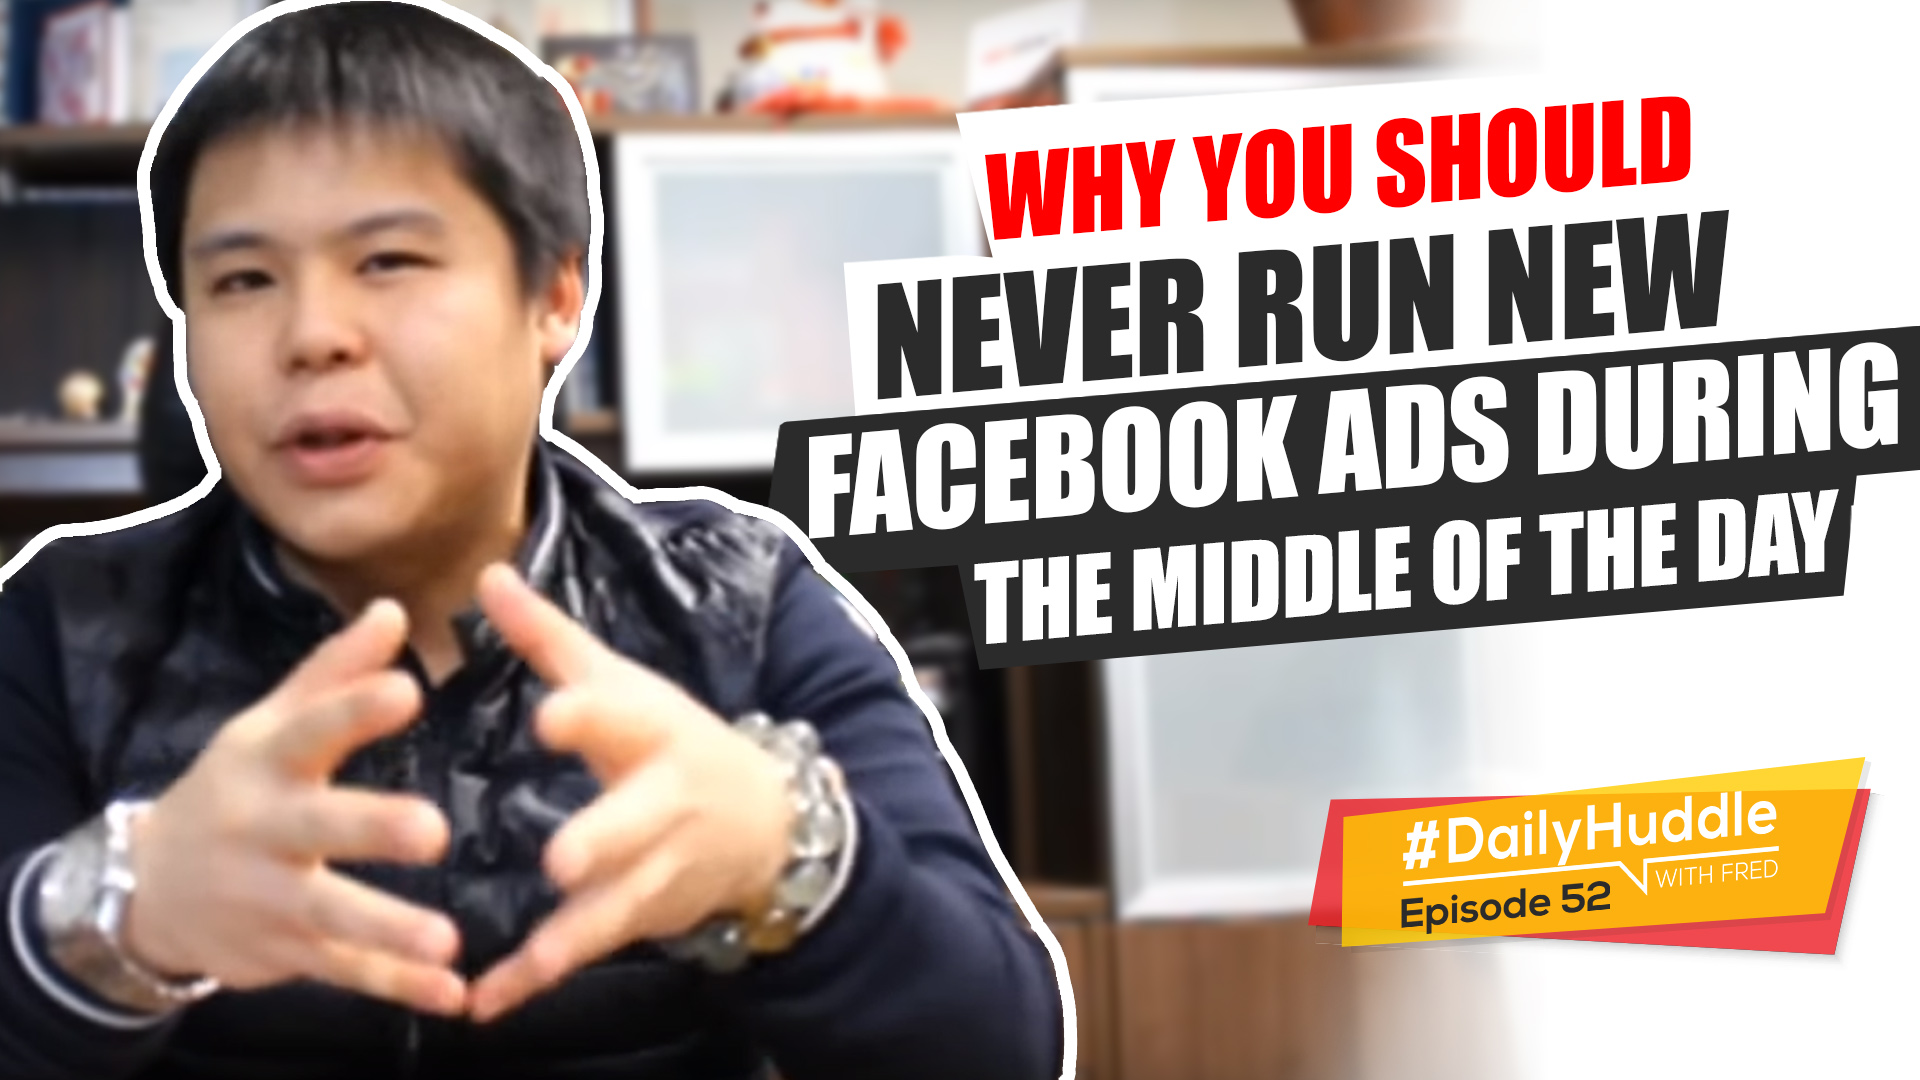 Daily Huddle - Ep 52 | Why You Should NEVER Run New Facebook Ads During The Middle Of The Day